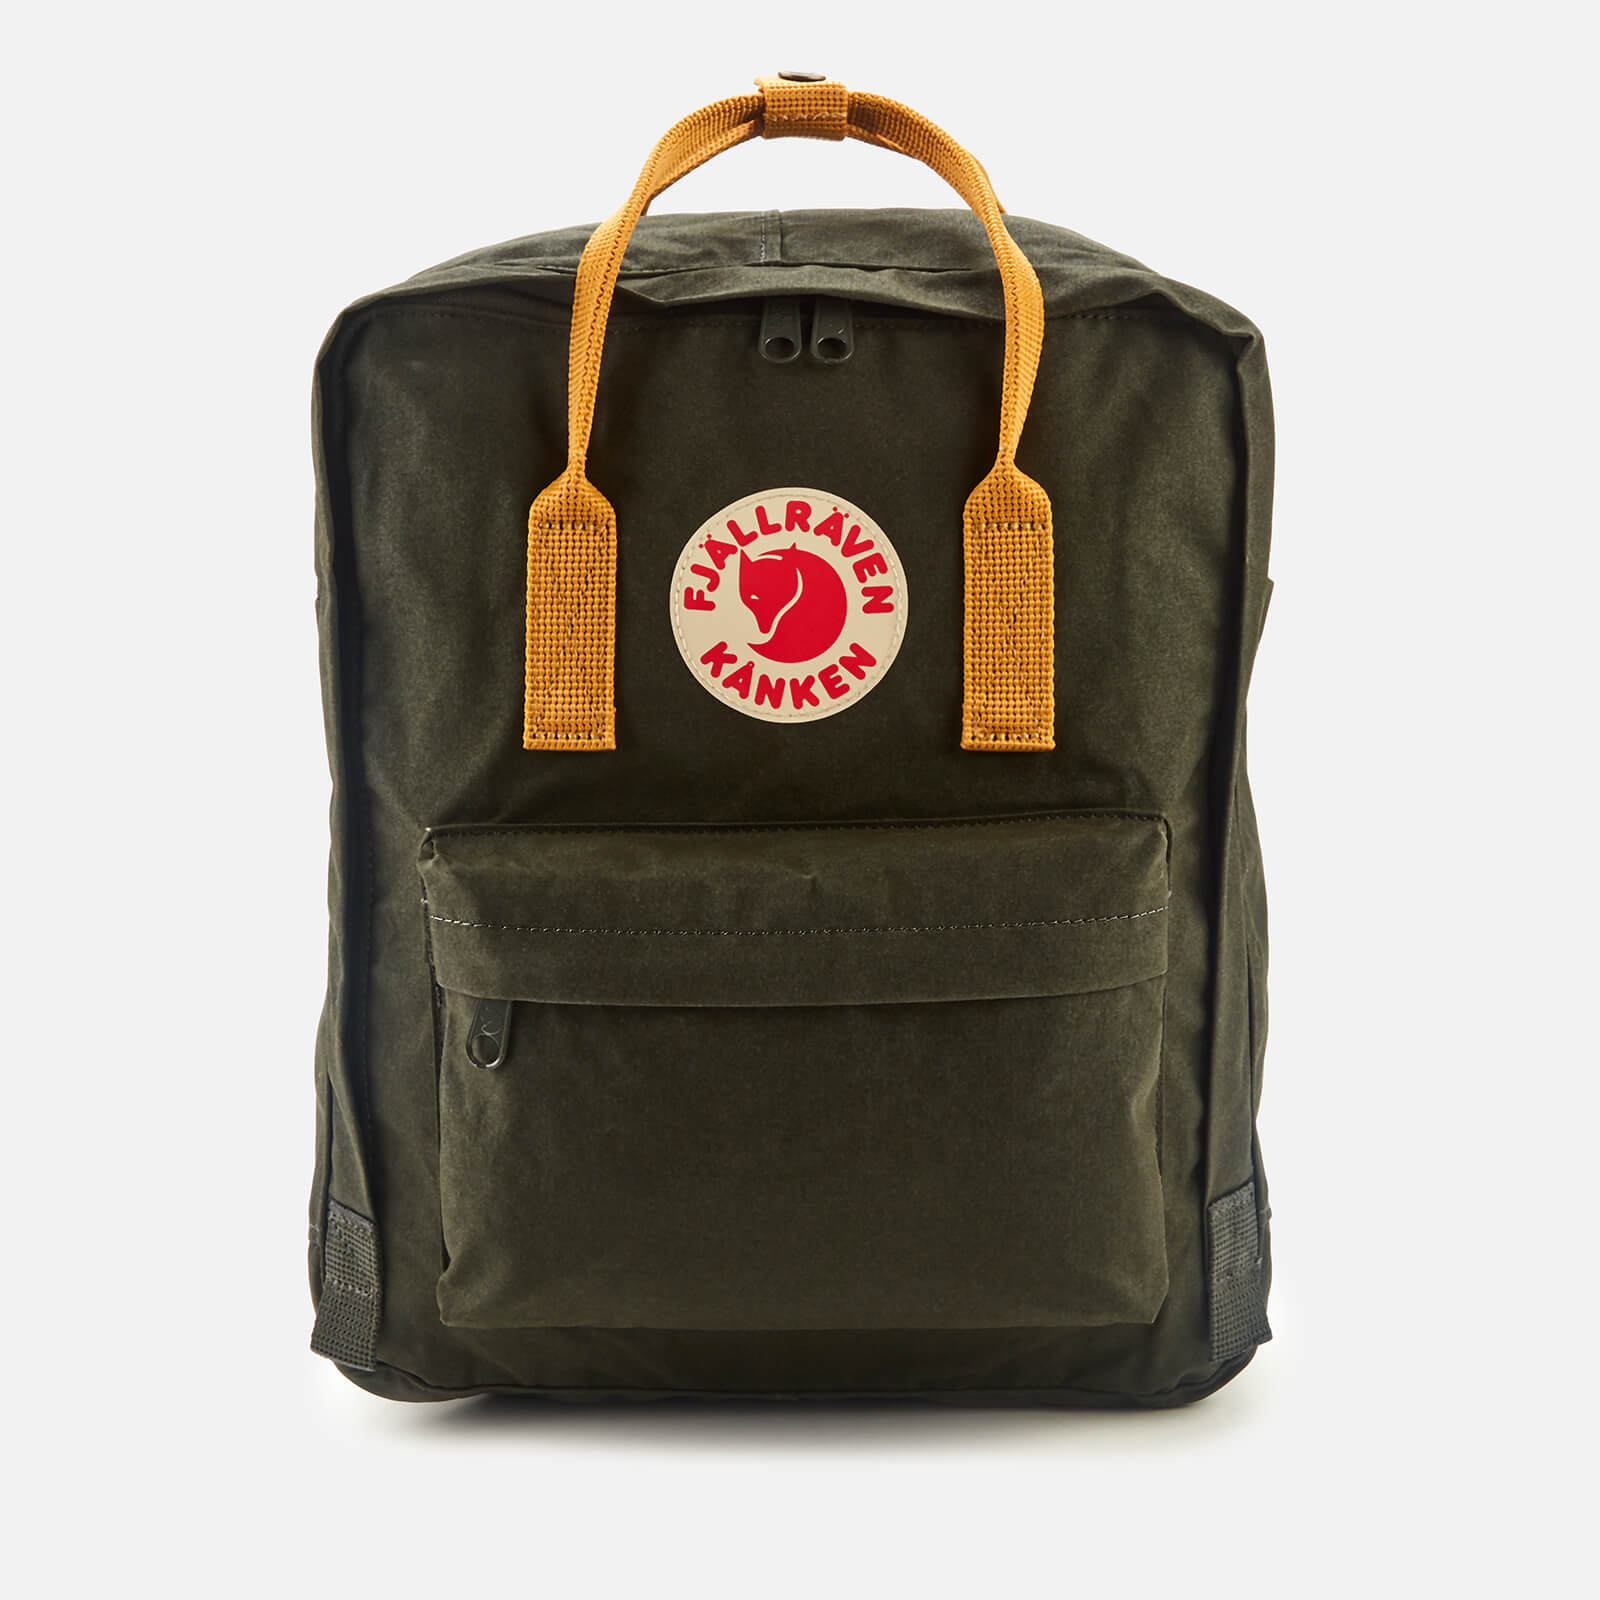 Fjallraven Women's Kanken Backpack - Deep Forest/Acorn